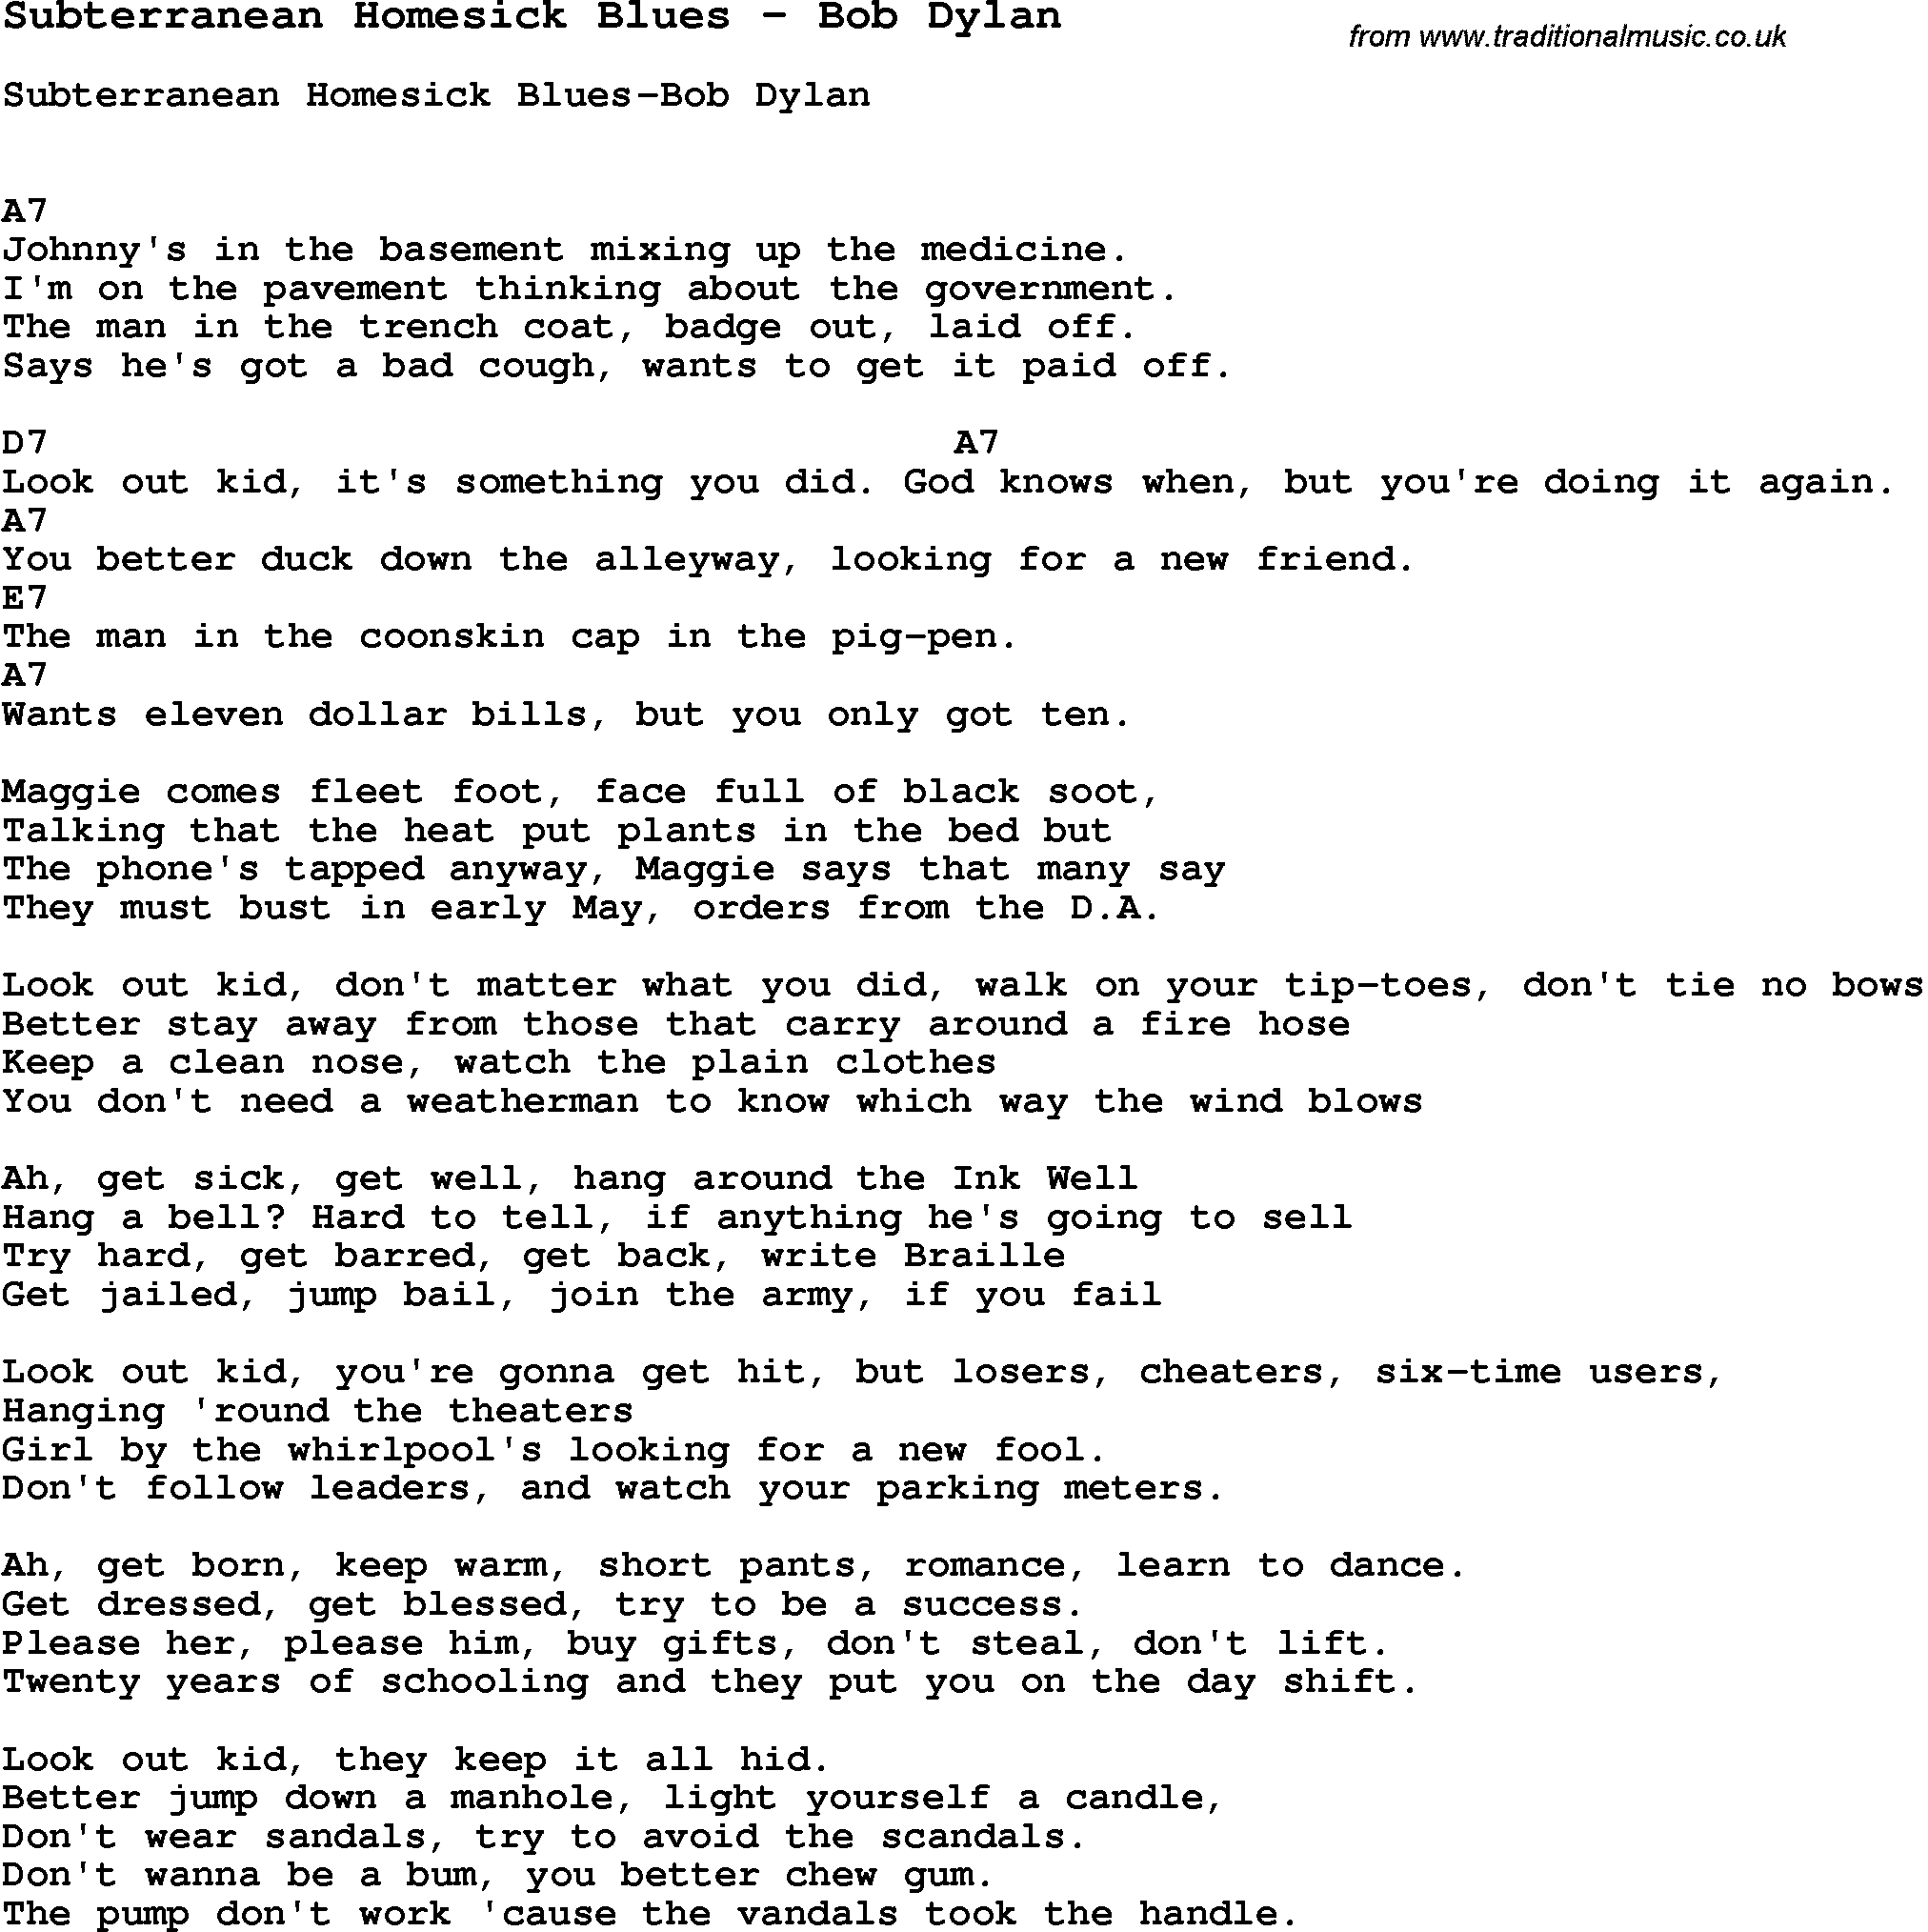 Song subterranean homesick blues by bob dylan song lyric for song subterranean homesick blues by bob dylan with lyrics for vocal performance and accompaniment chords hexwebz Gallery